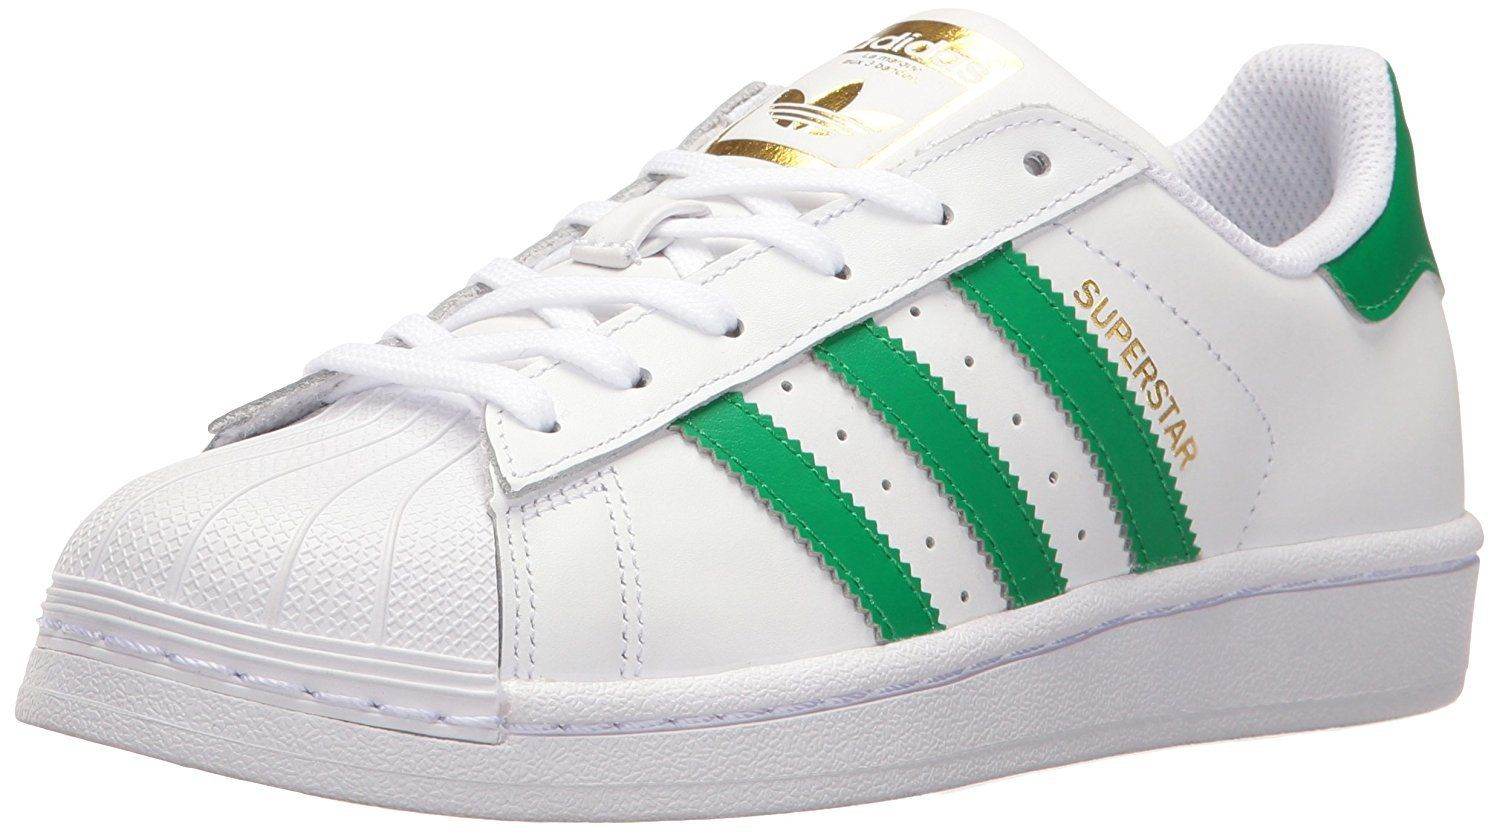 ... Full grain leather upper Rubber shell toe Synthetic leather lining  Metallic gold accents dress up the look of the legendary adidas superstar  sneaker. 2b06cf5c77